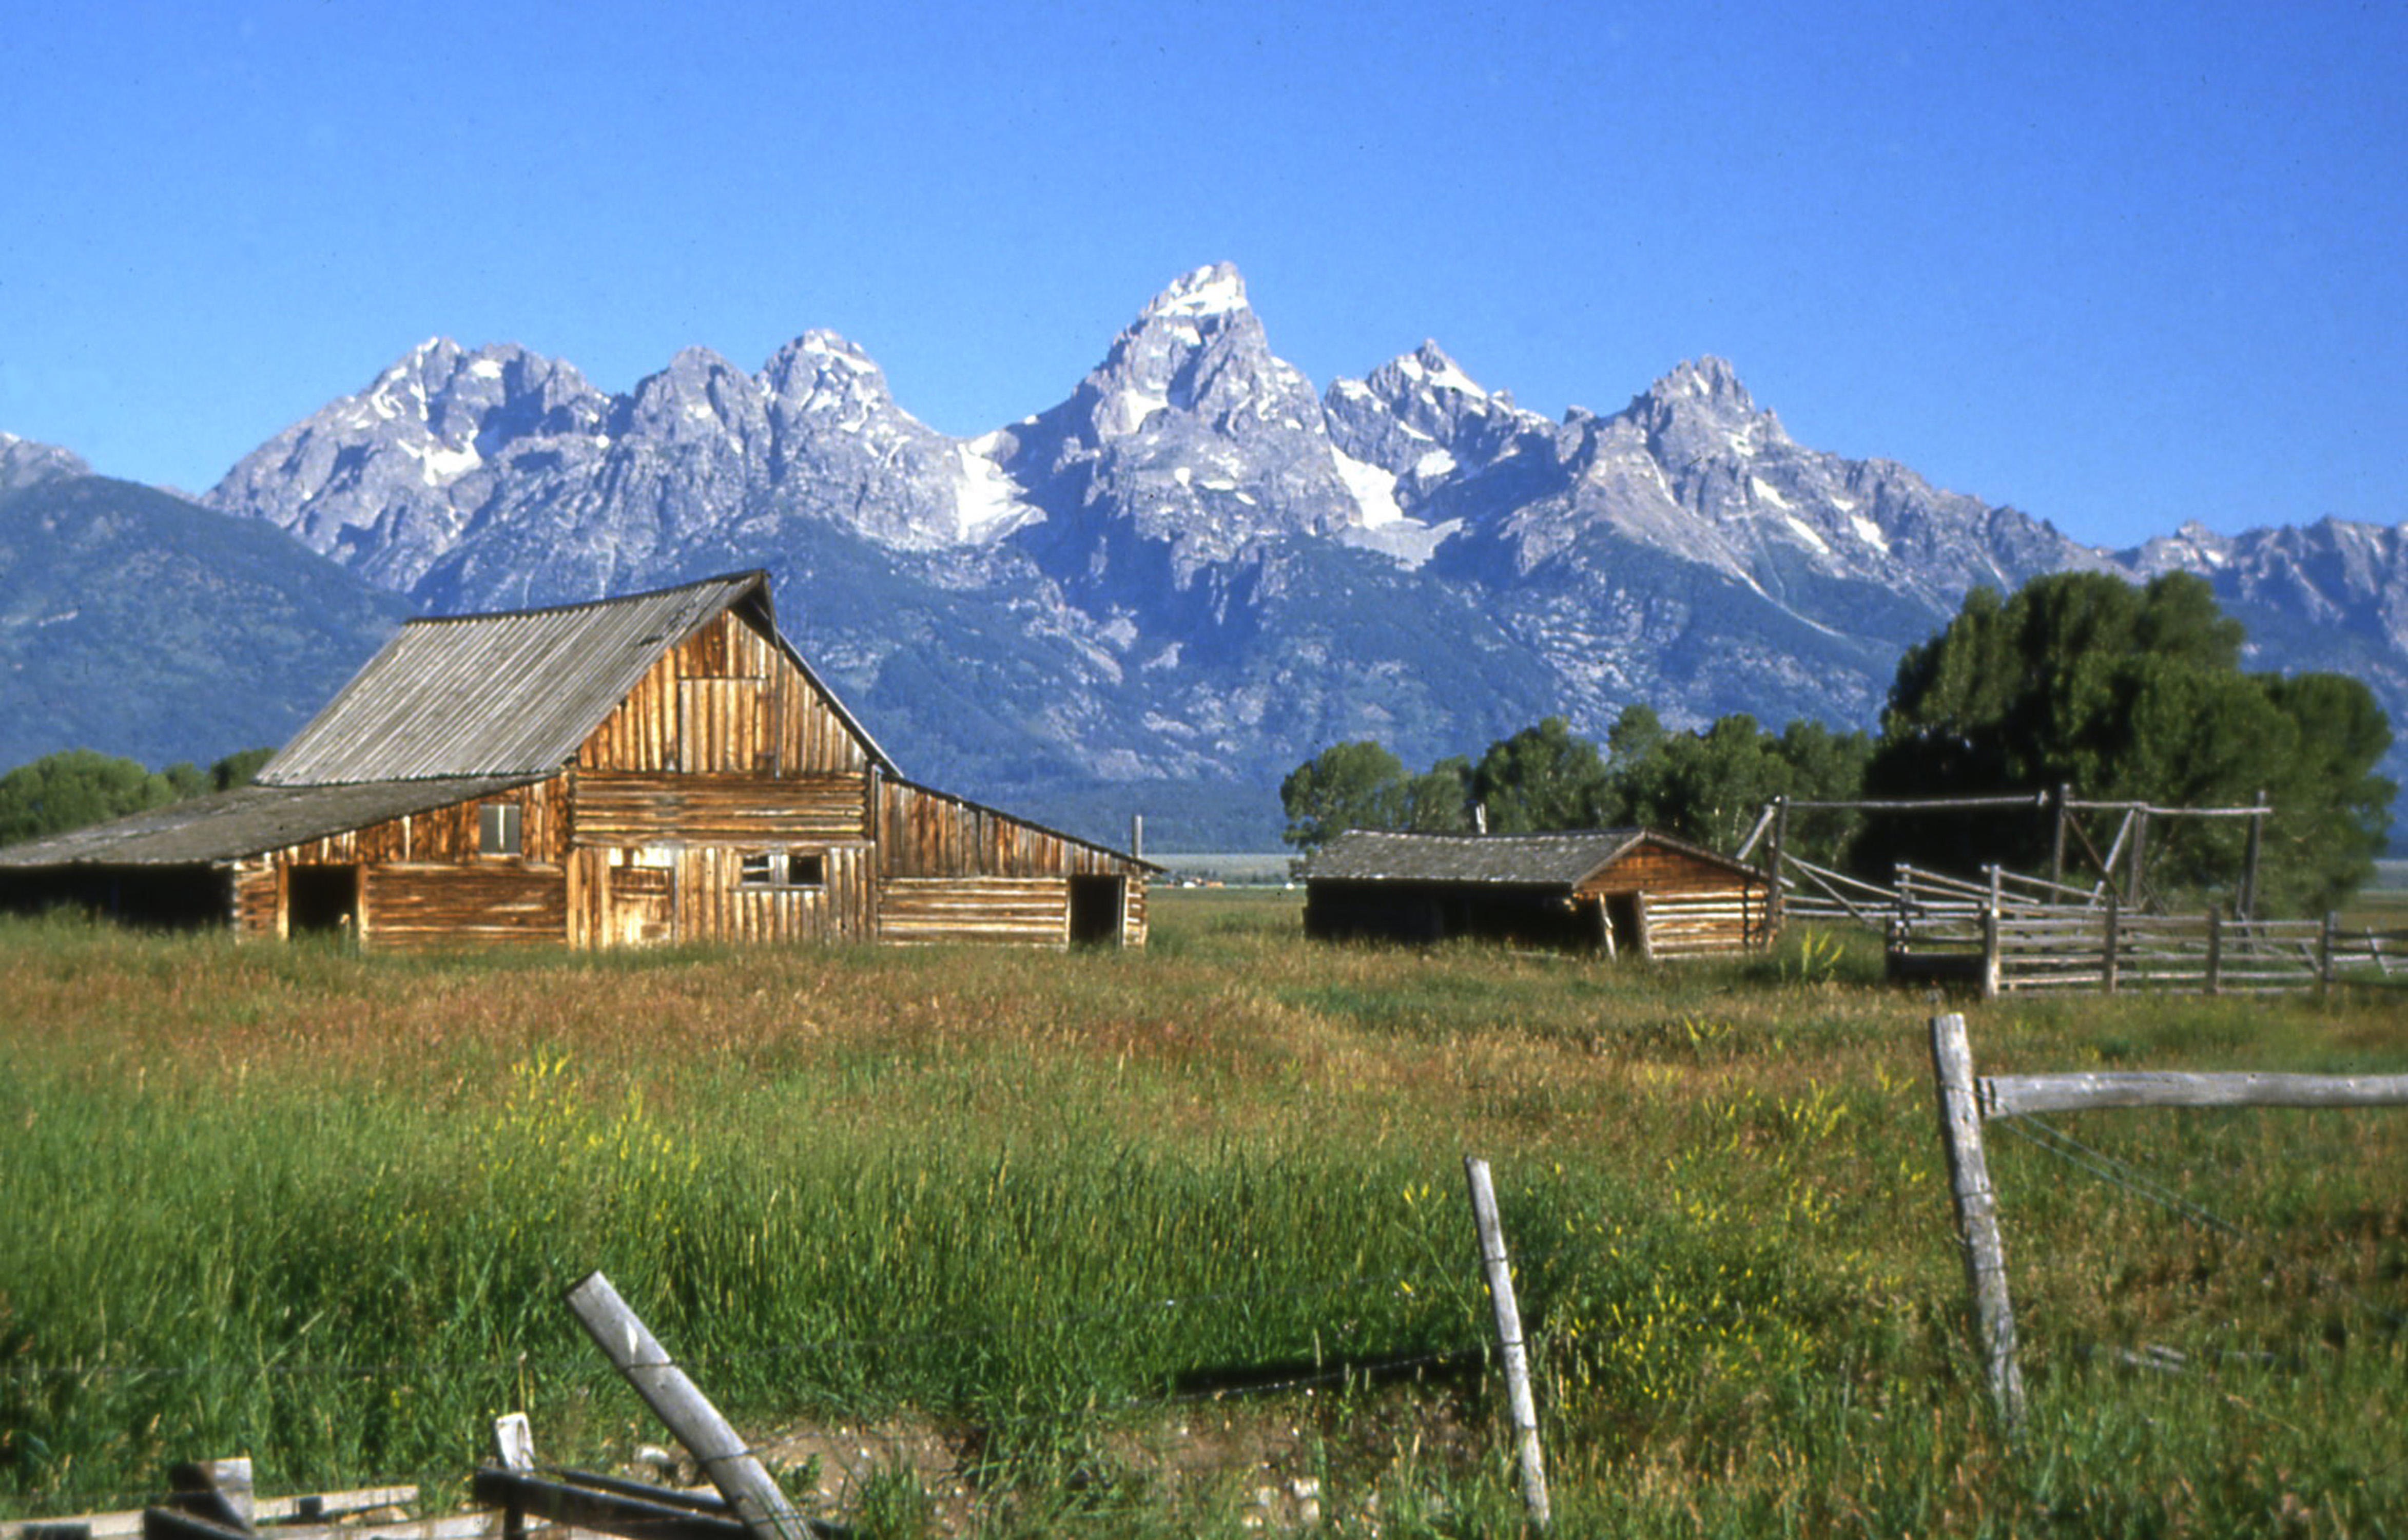 Centennial Celebration Planned To Commemorate The T A Moulton Barn Grand Teton National Park U S National Park Service